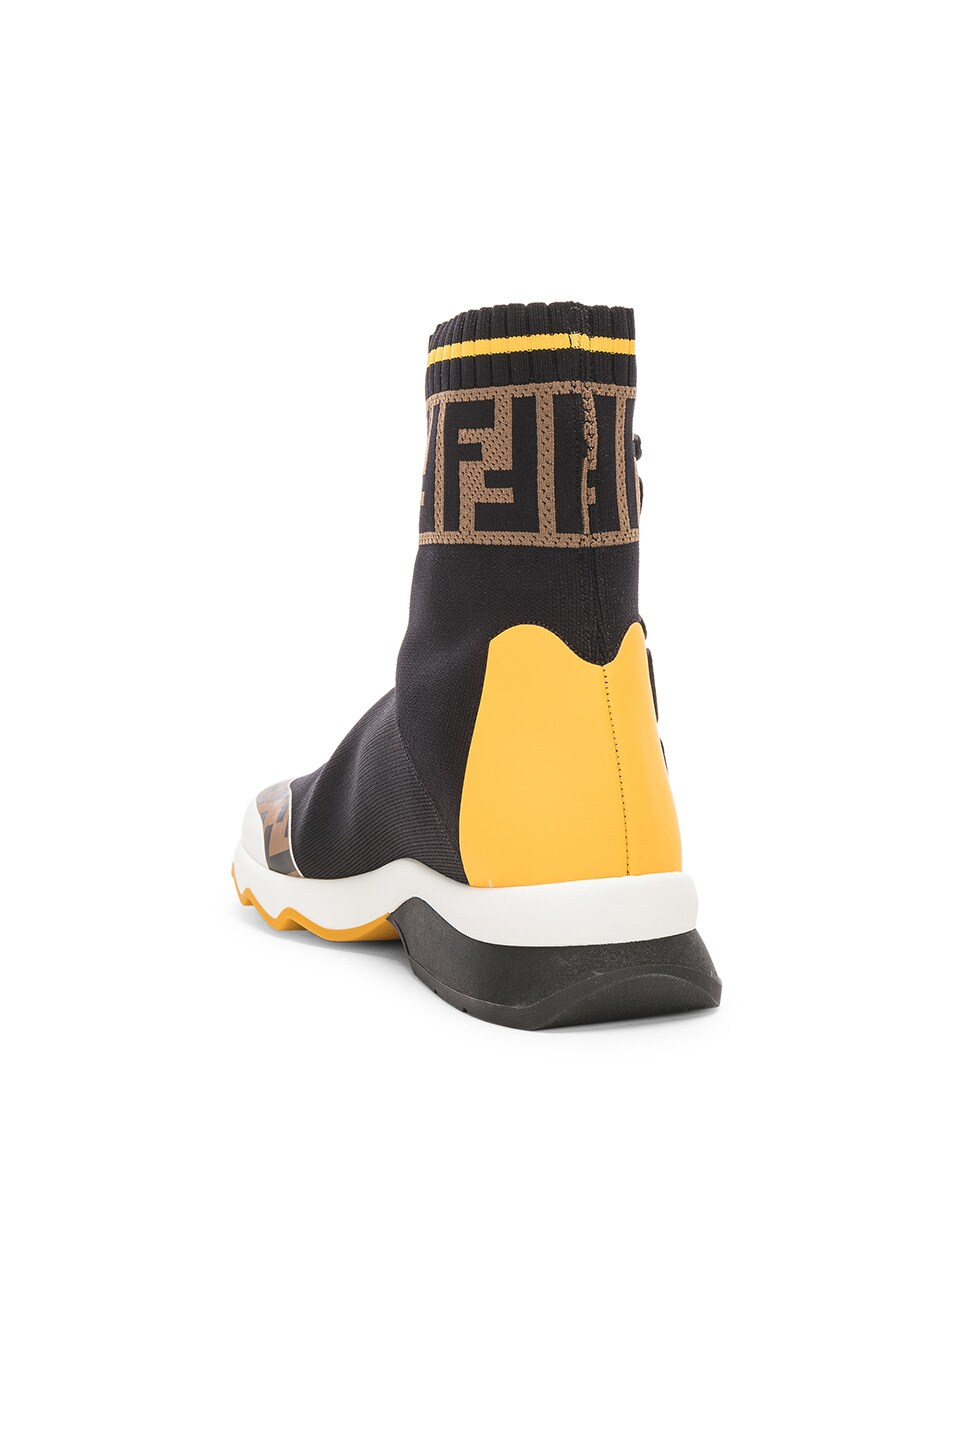 Image 3 of Fendi x FILA Sock Sneakers in Black & Multicolor